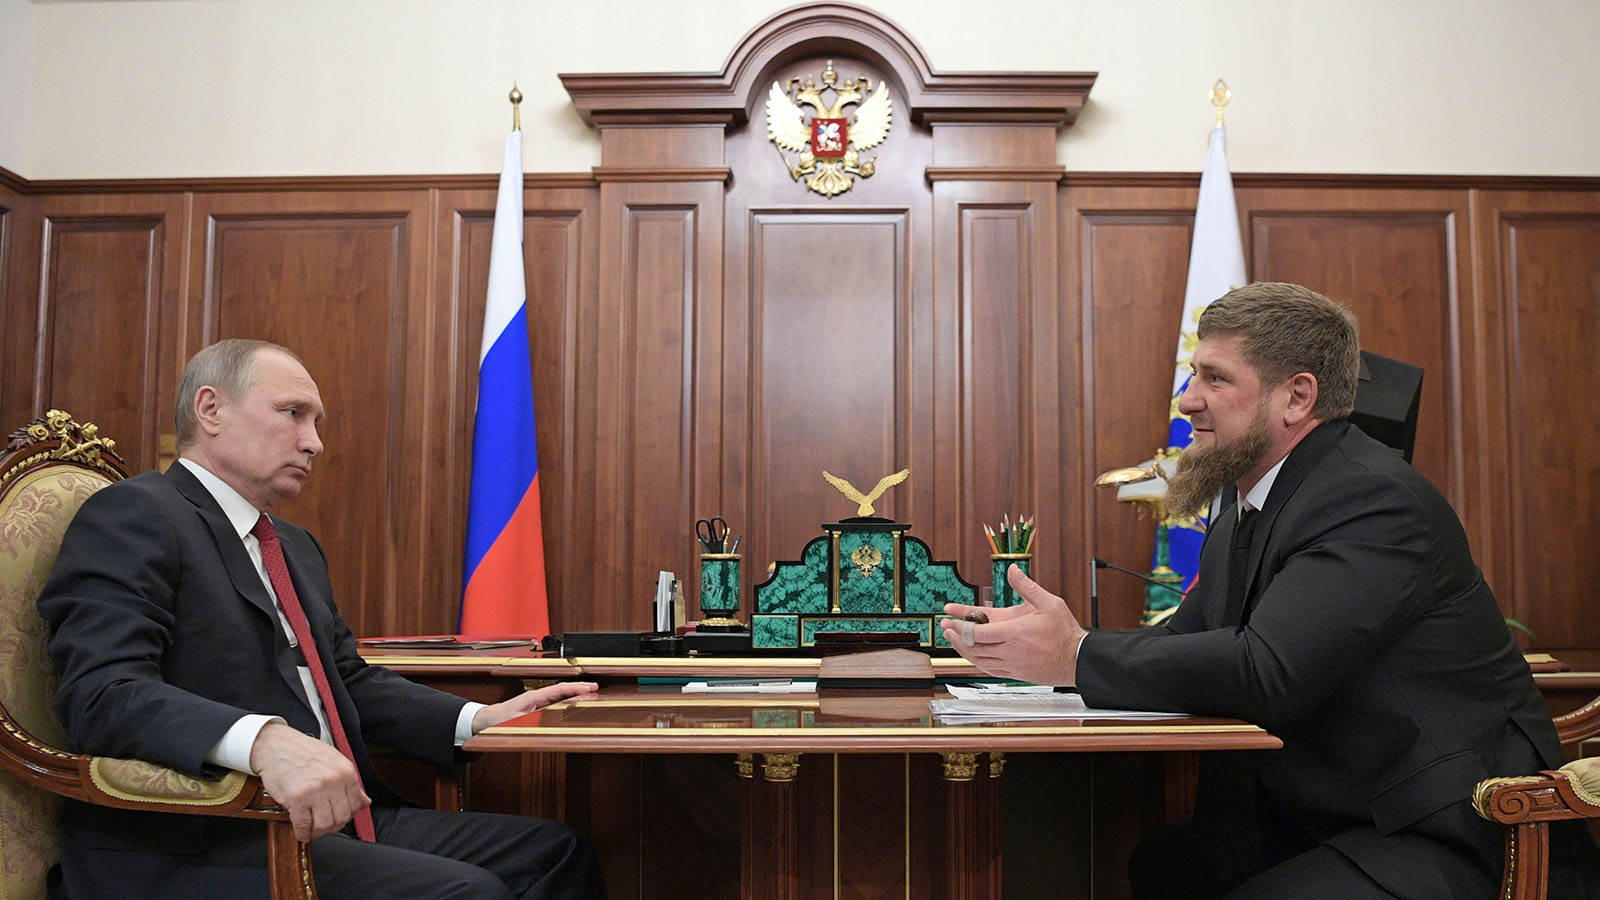 President of Chechnya Intends to Eliminate All Gay Men There by Ramadan